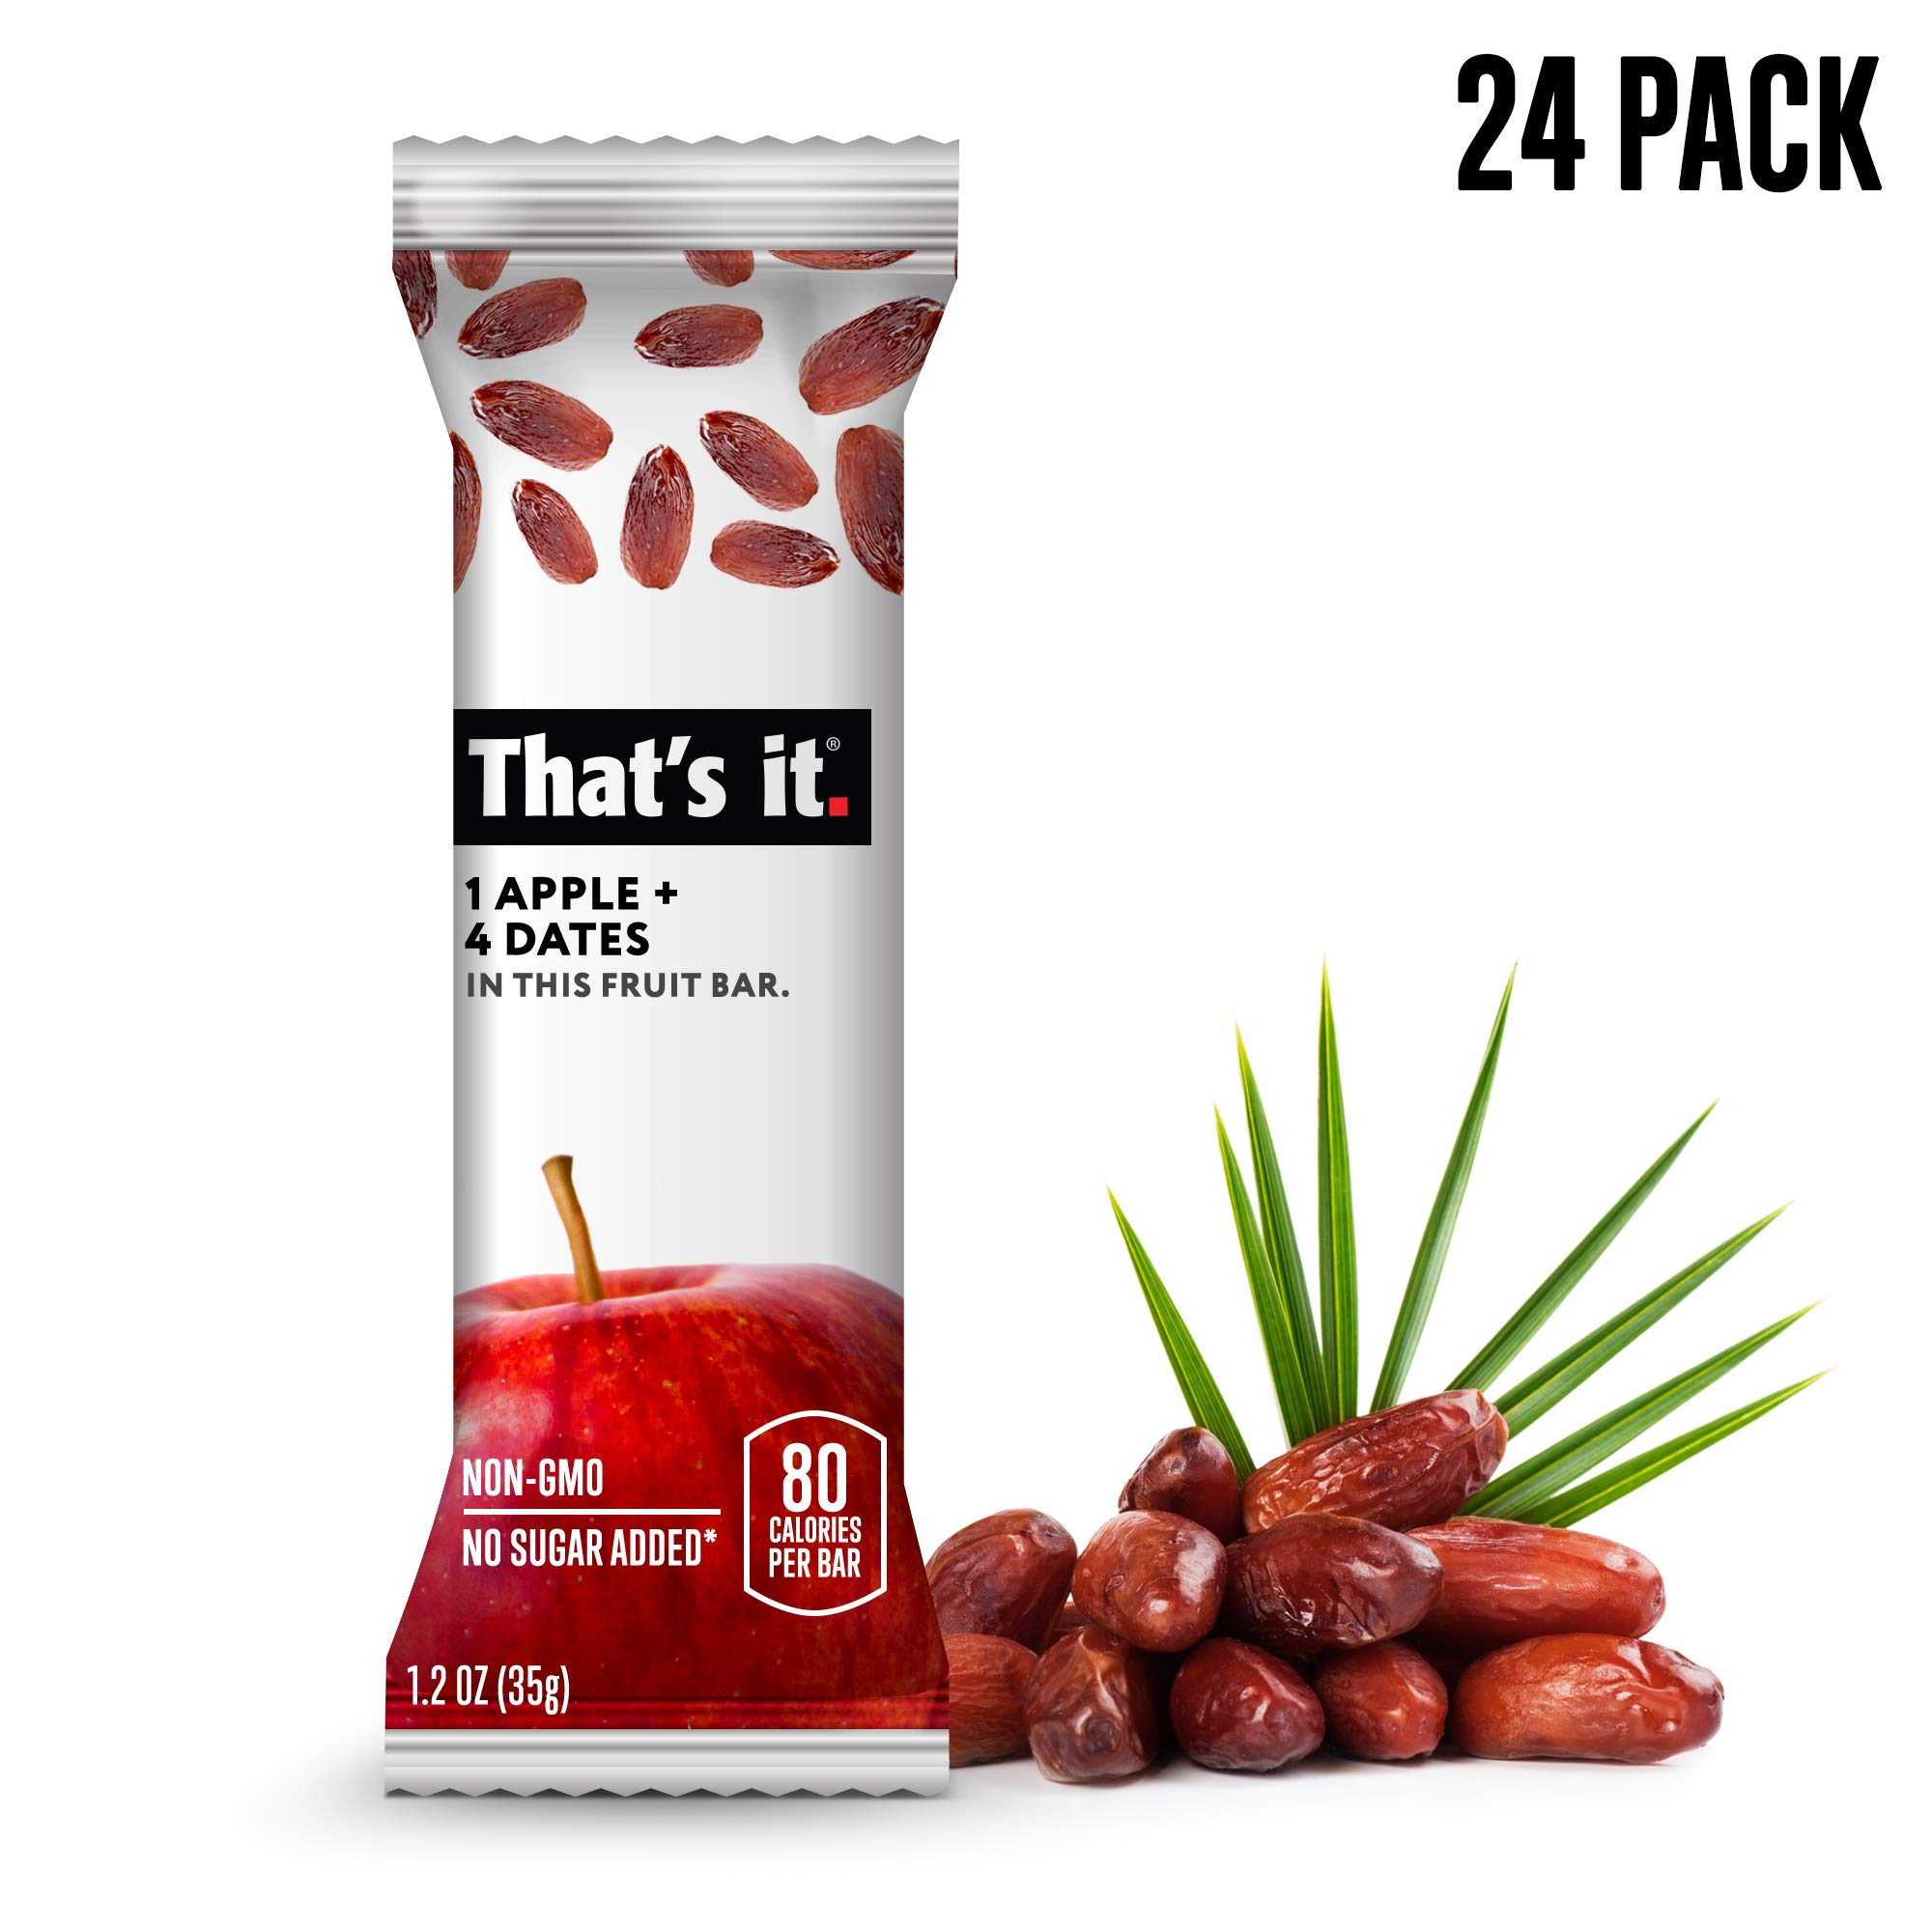 That's it. Apple + Date Fruit Bars 100% All Natural, No Artificial Ingredients or Preservatives Delicious Healthy Snack for Children & Adults, Vegan, Gluten Free, Paleo, Kosher, Non GMO (24 Pack)